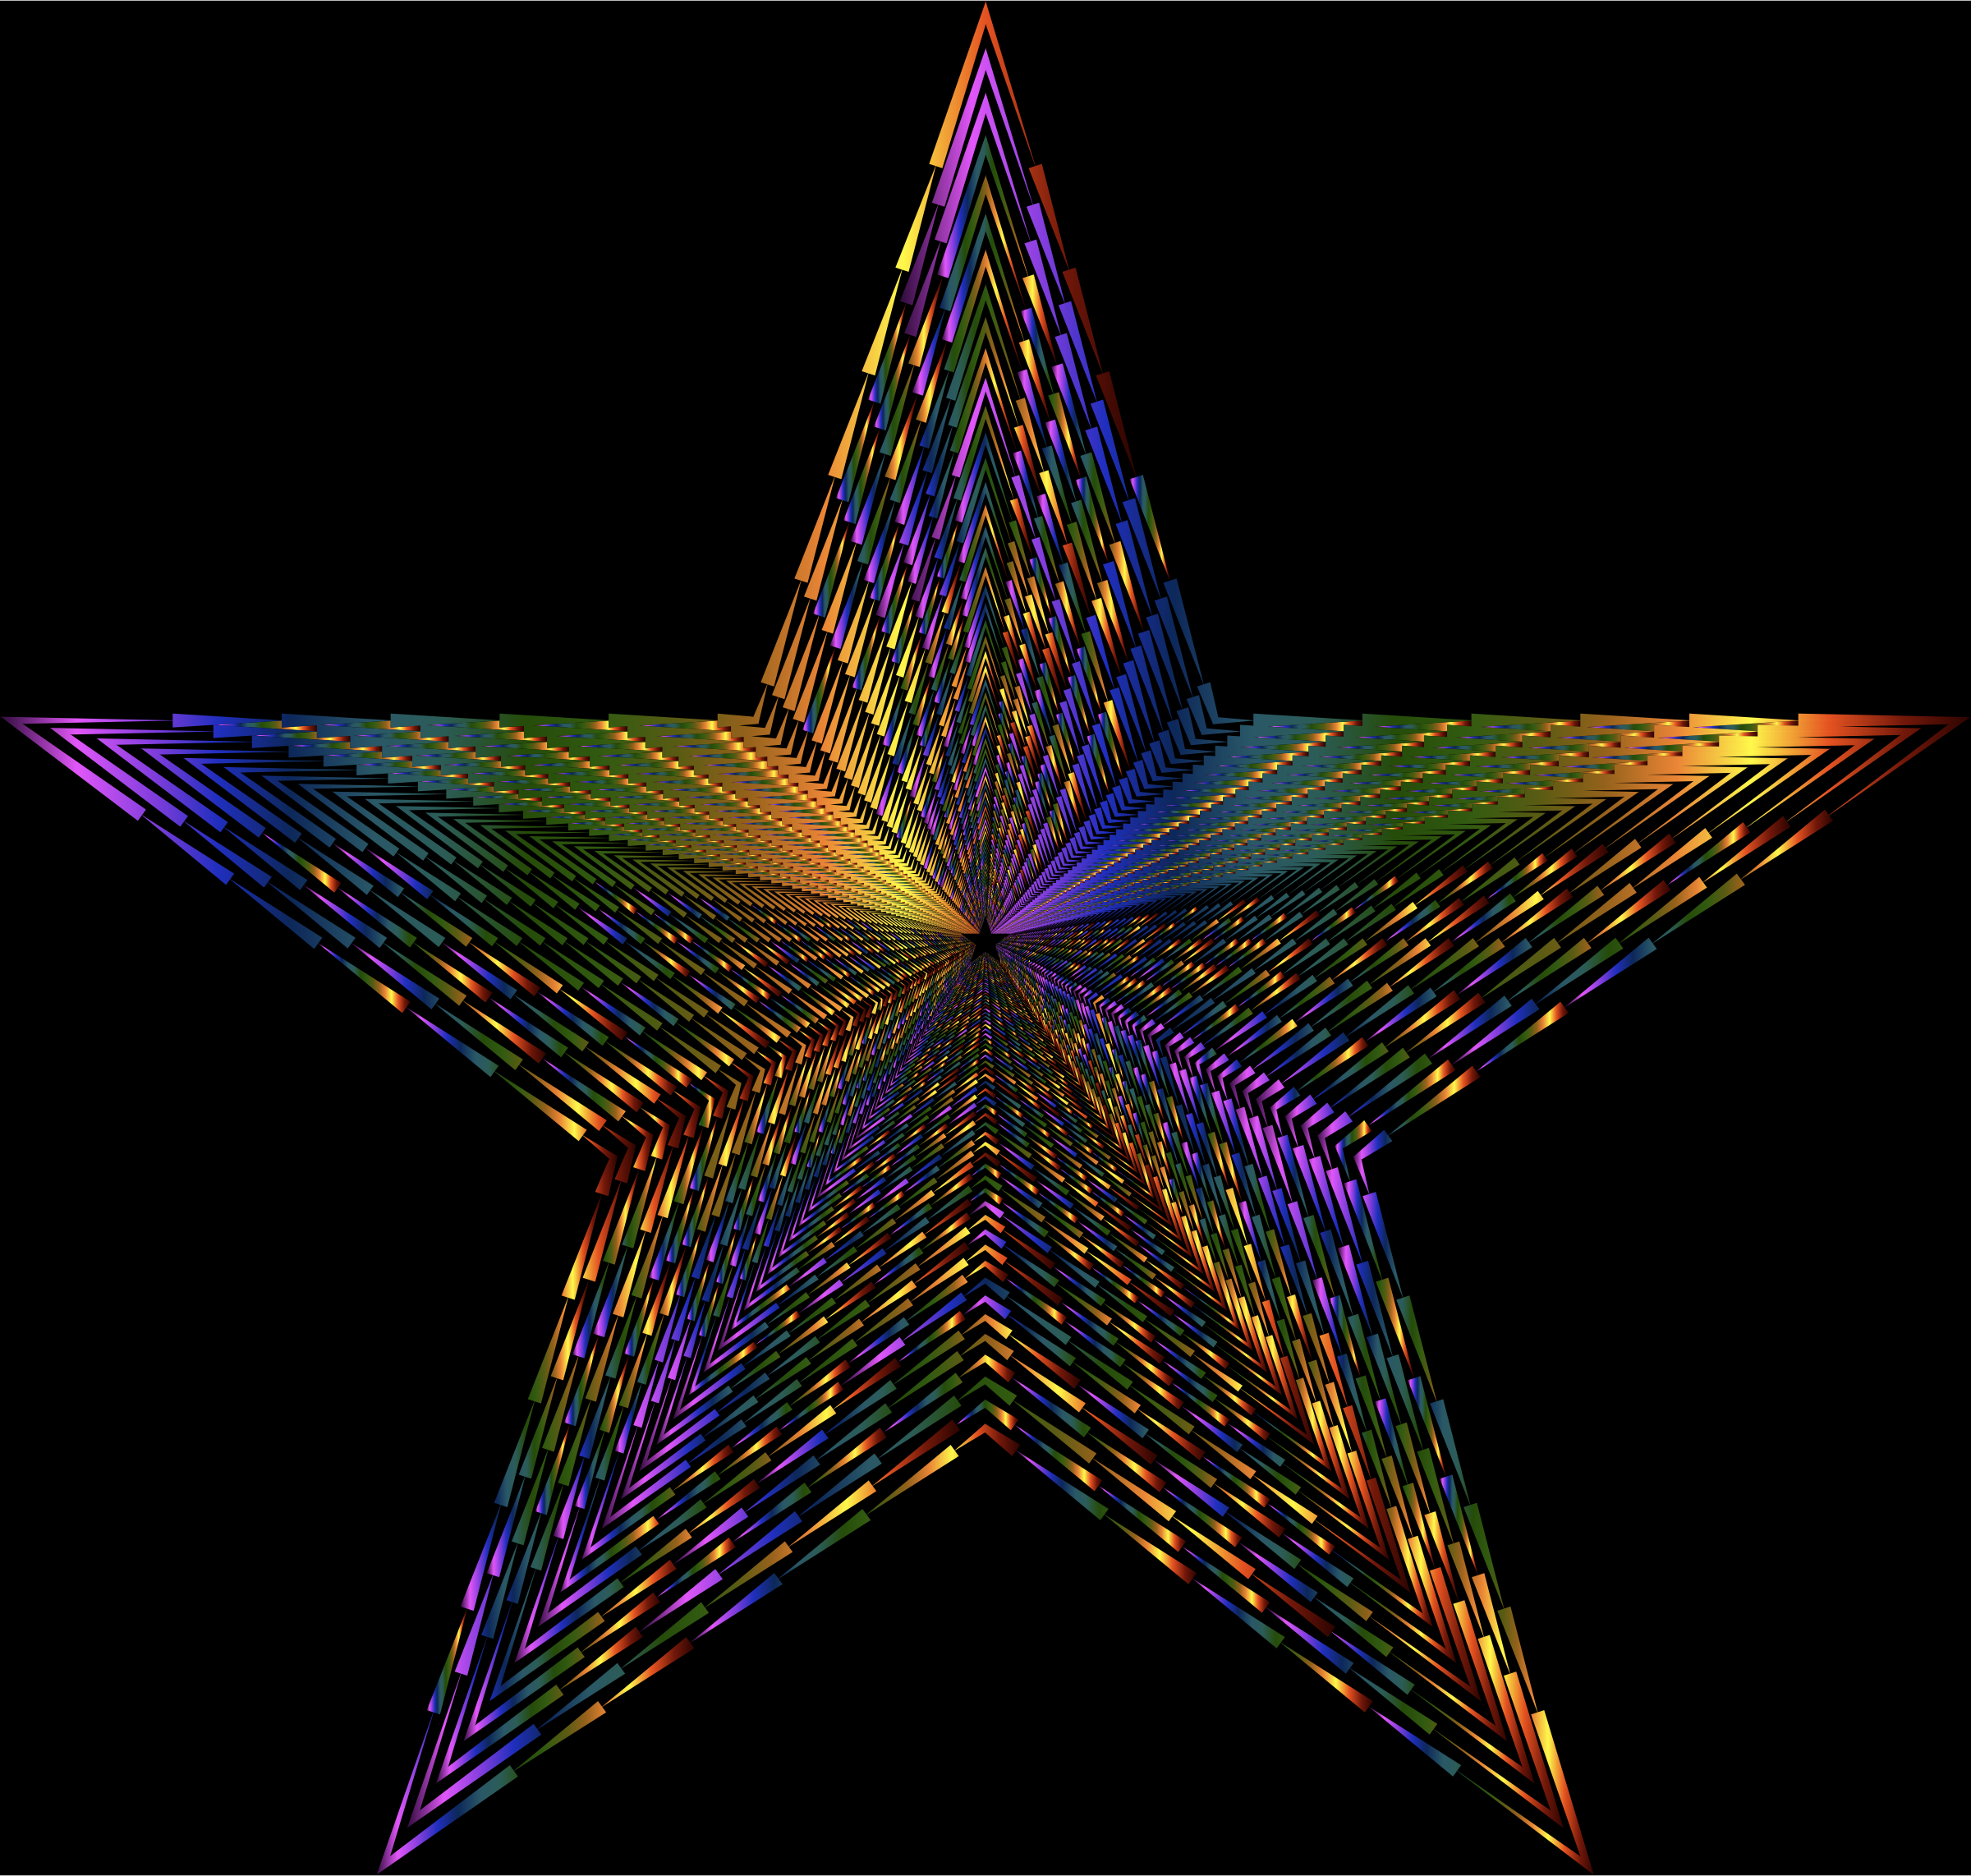 Psychedelic 3D Star Spikes by GDJ